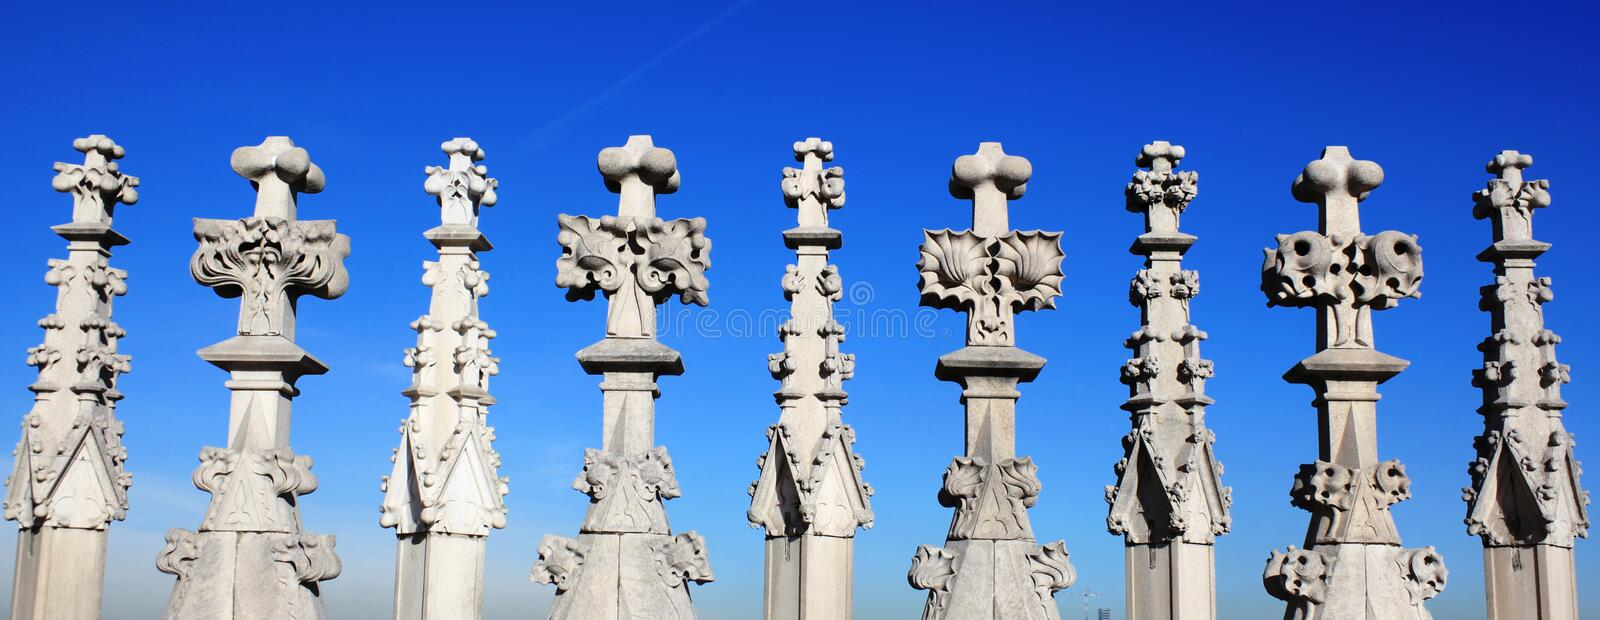 Download Gothic Architecture Details Stock Photo